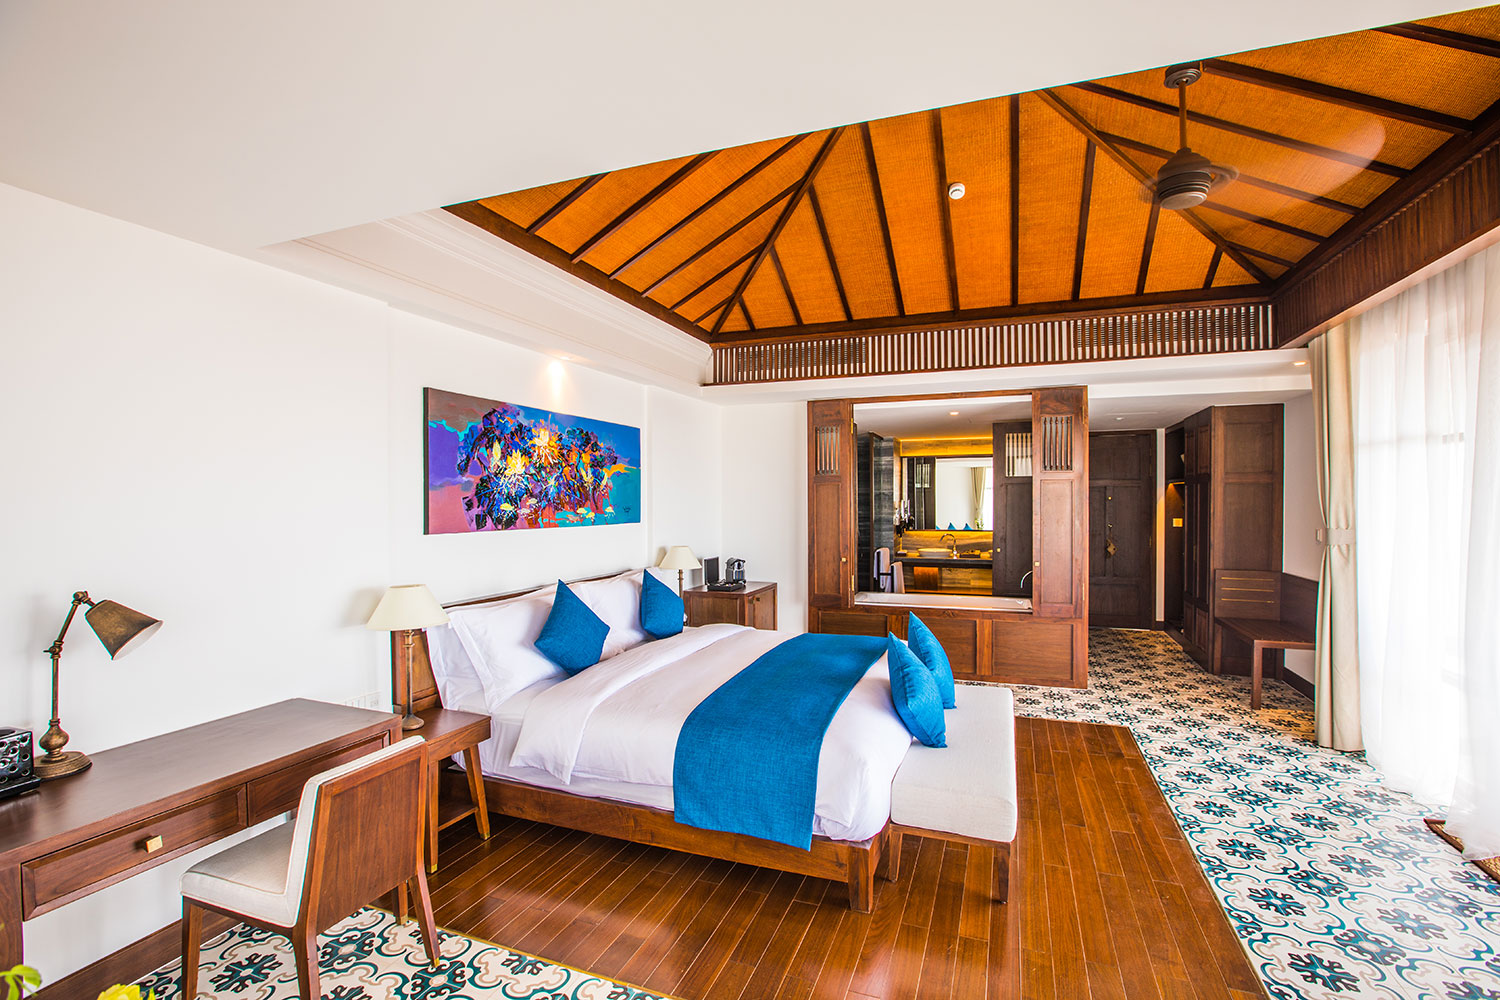 Terrace Garden View Suite - The incredibly spacious 72 sqm Terrace Garden View Suites enjoy a private balcony with stunning views across the tropical gardens, and a gorgeous design that reflects the resort's storied indochine charm without compromising on modern luxury.